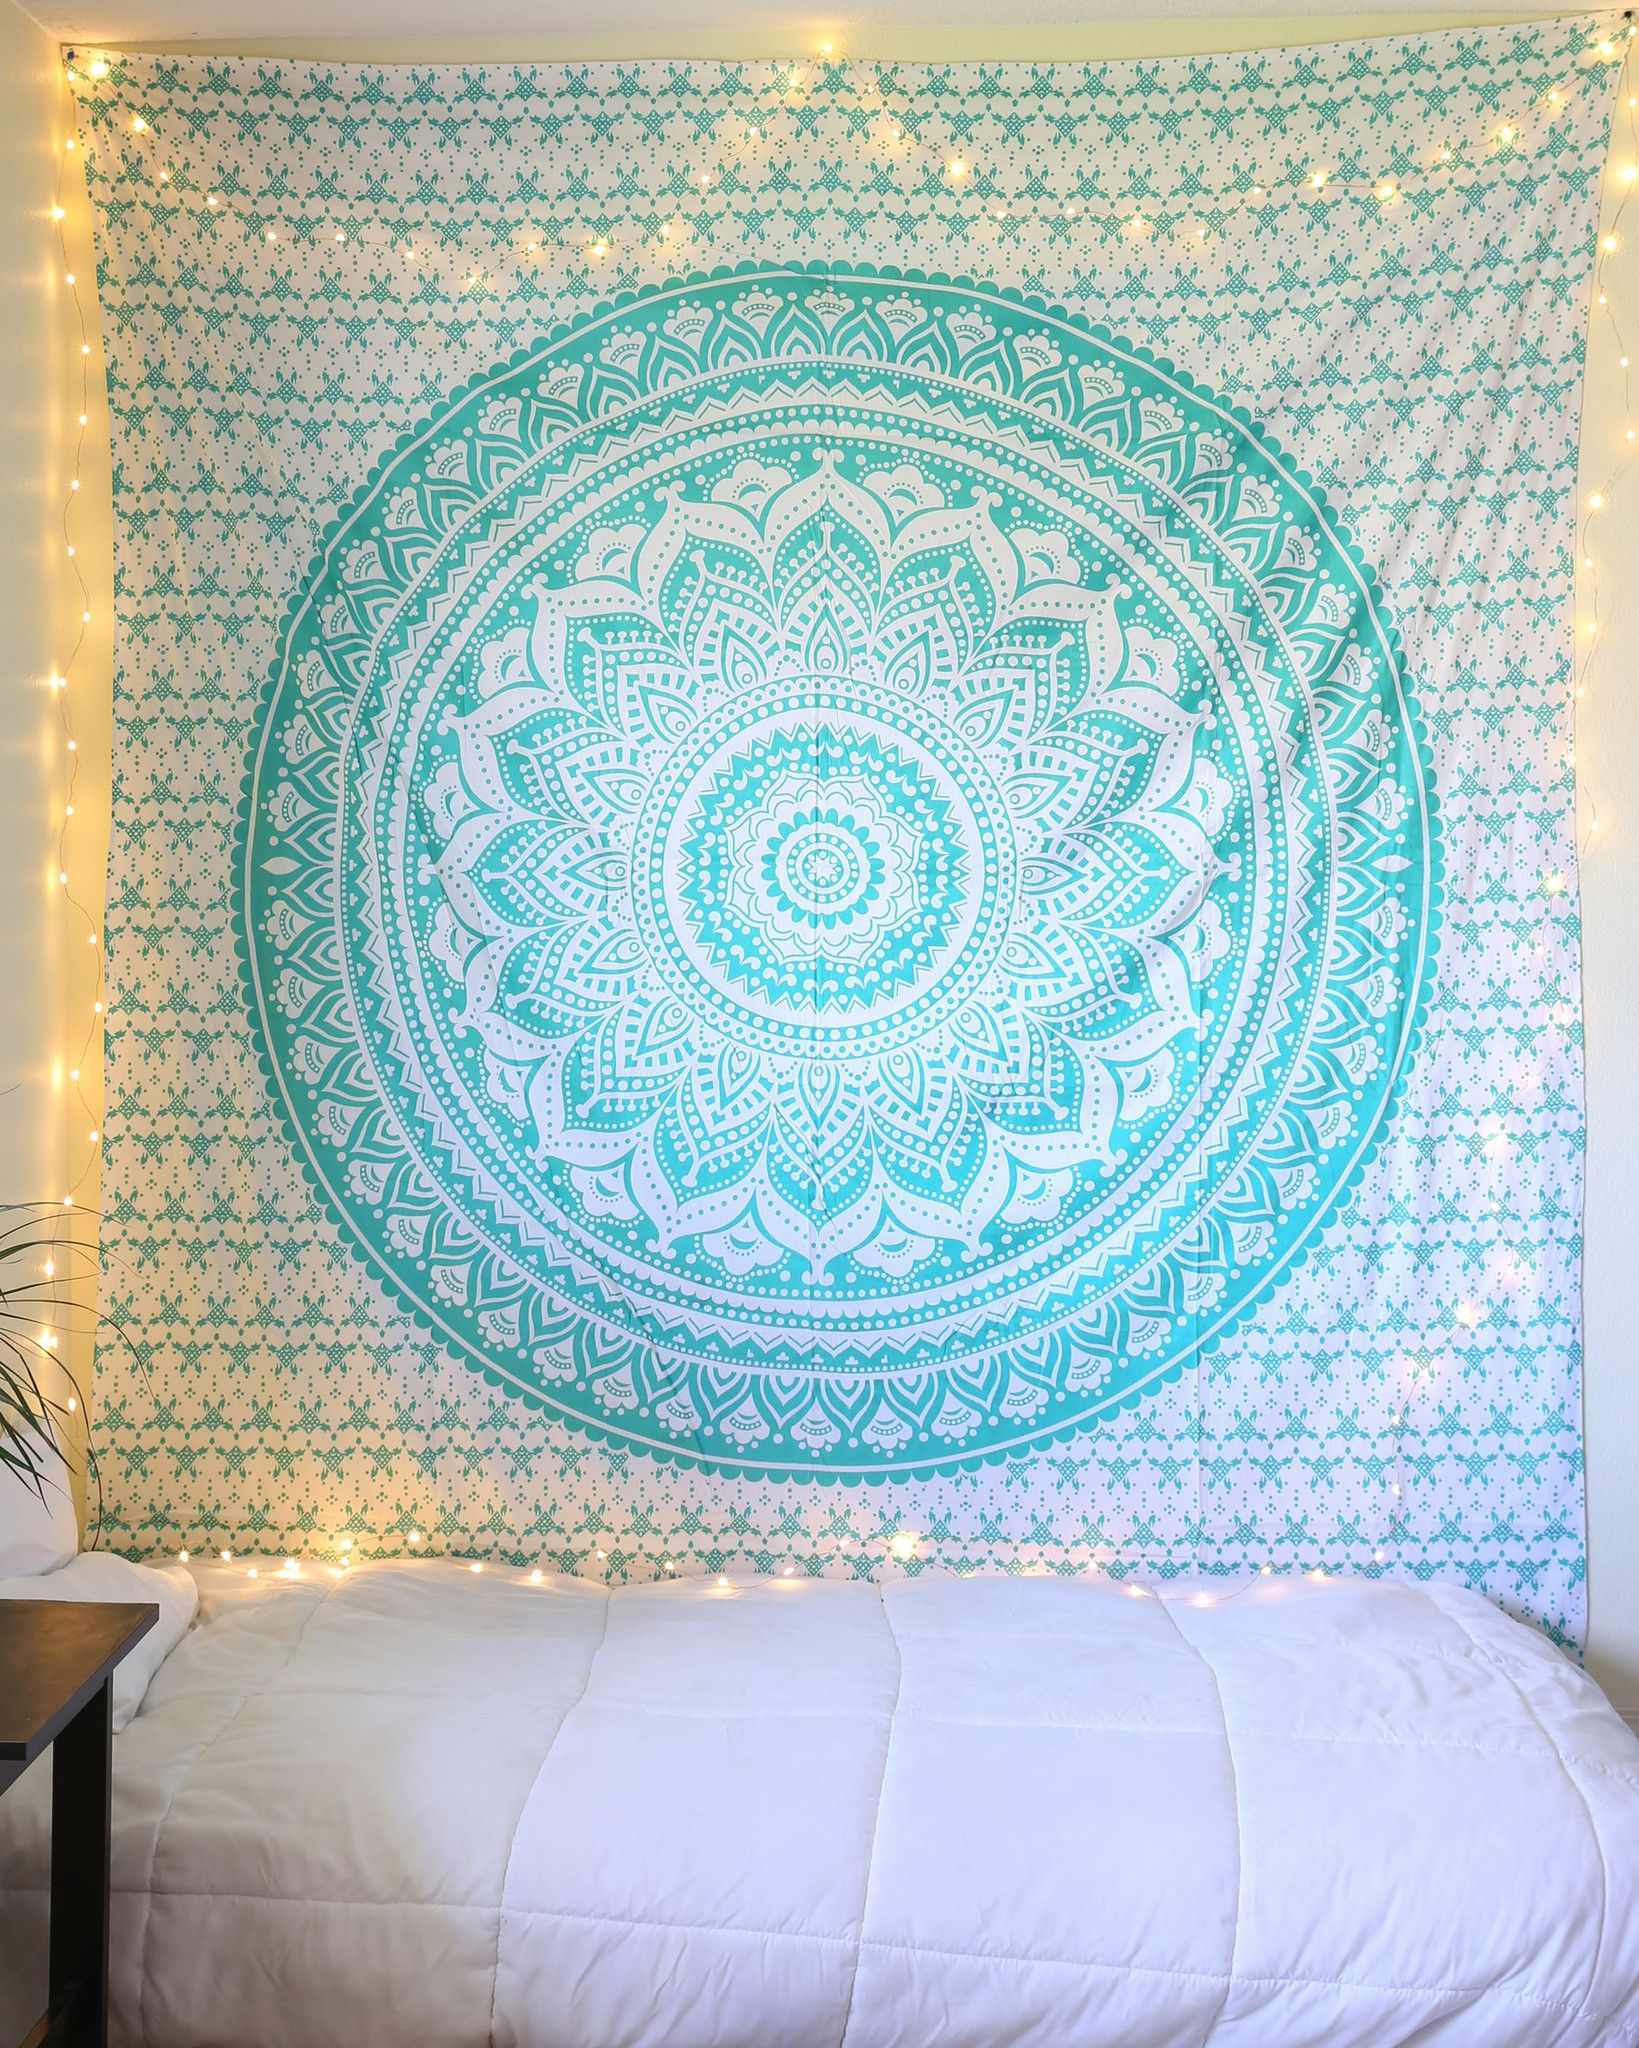 Spread Out Your Tapestry For A Refreshing Springtime Picnic, Relax On A Lazy Beach Holiday, Or